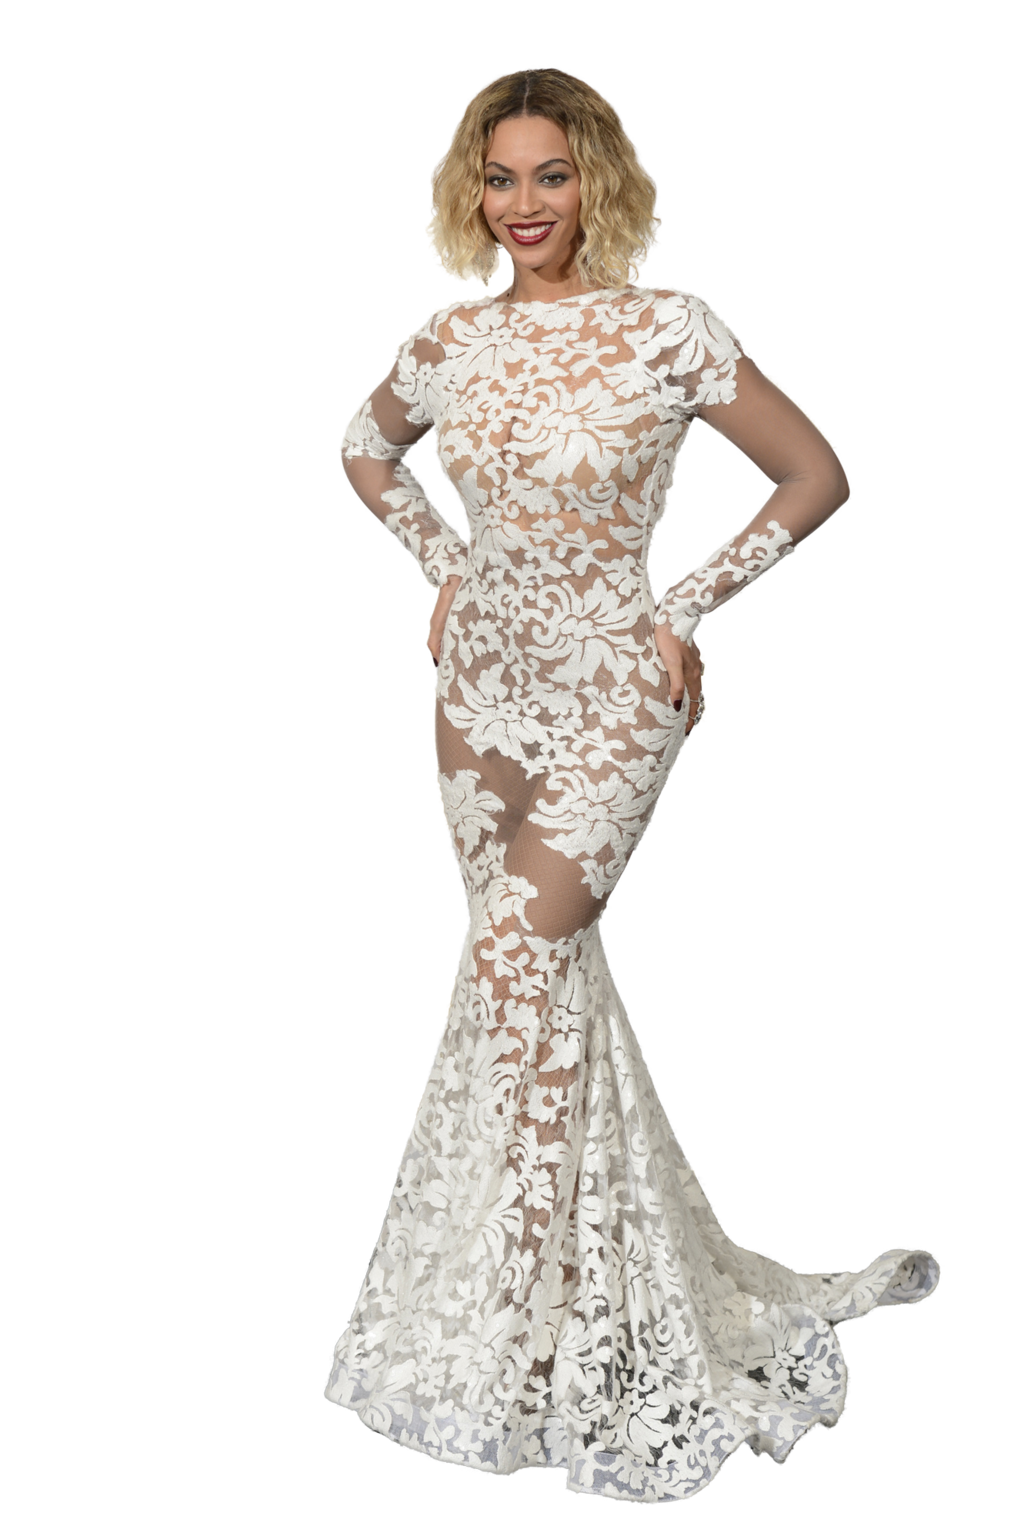 graphic Png images pluspng grammy. Beyonce transparent dress